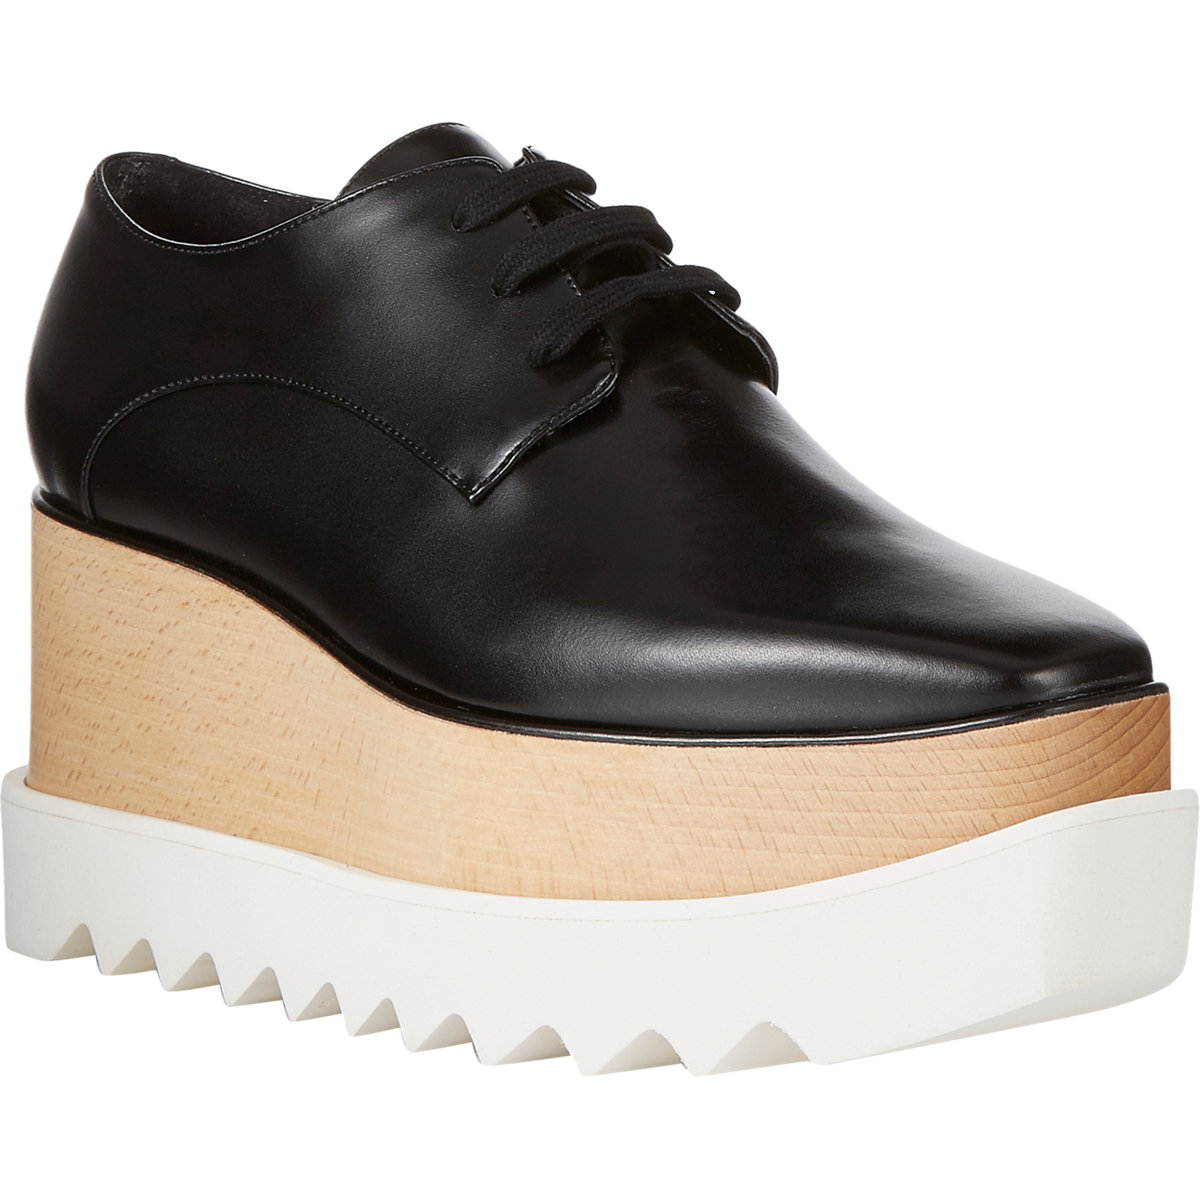 Stella McCartney Britt Platform Oxfords at Barneys.com